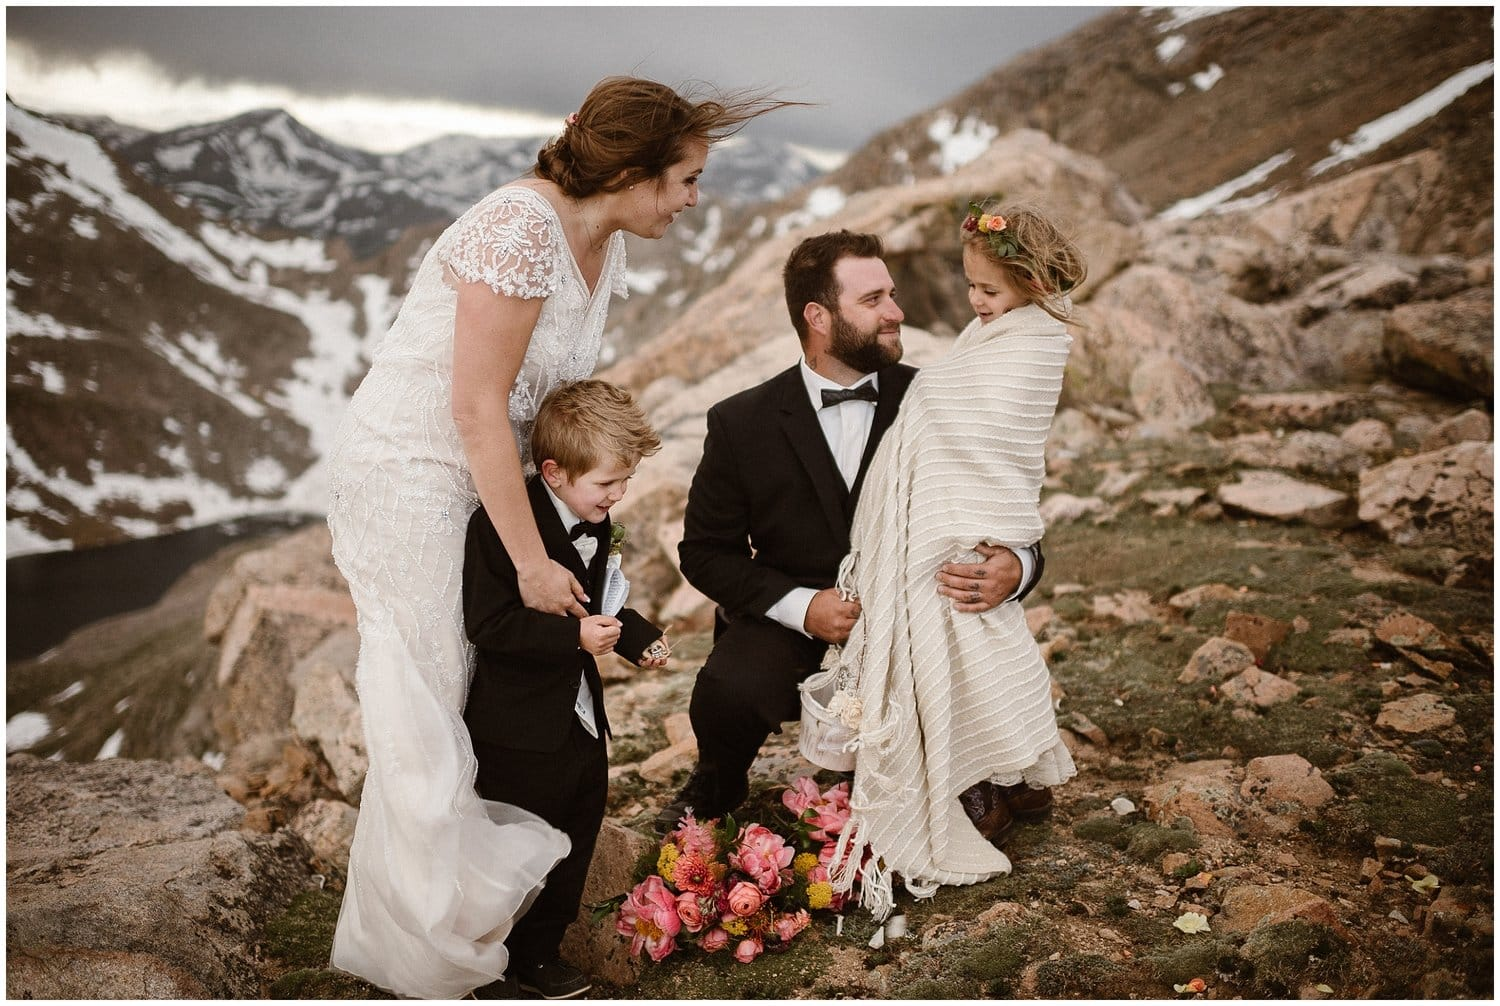 A bride and groom smile at each other while embracing their two kids in the mountains.